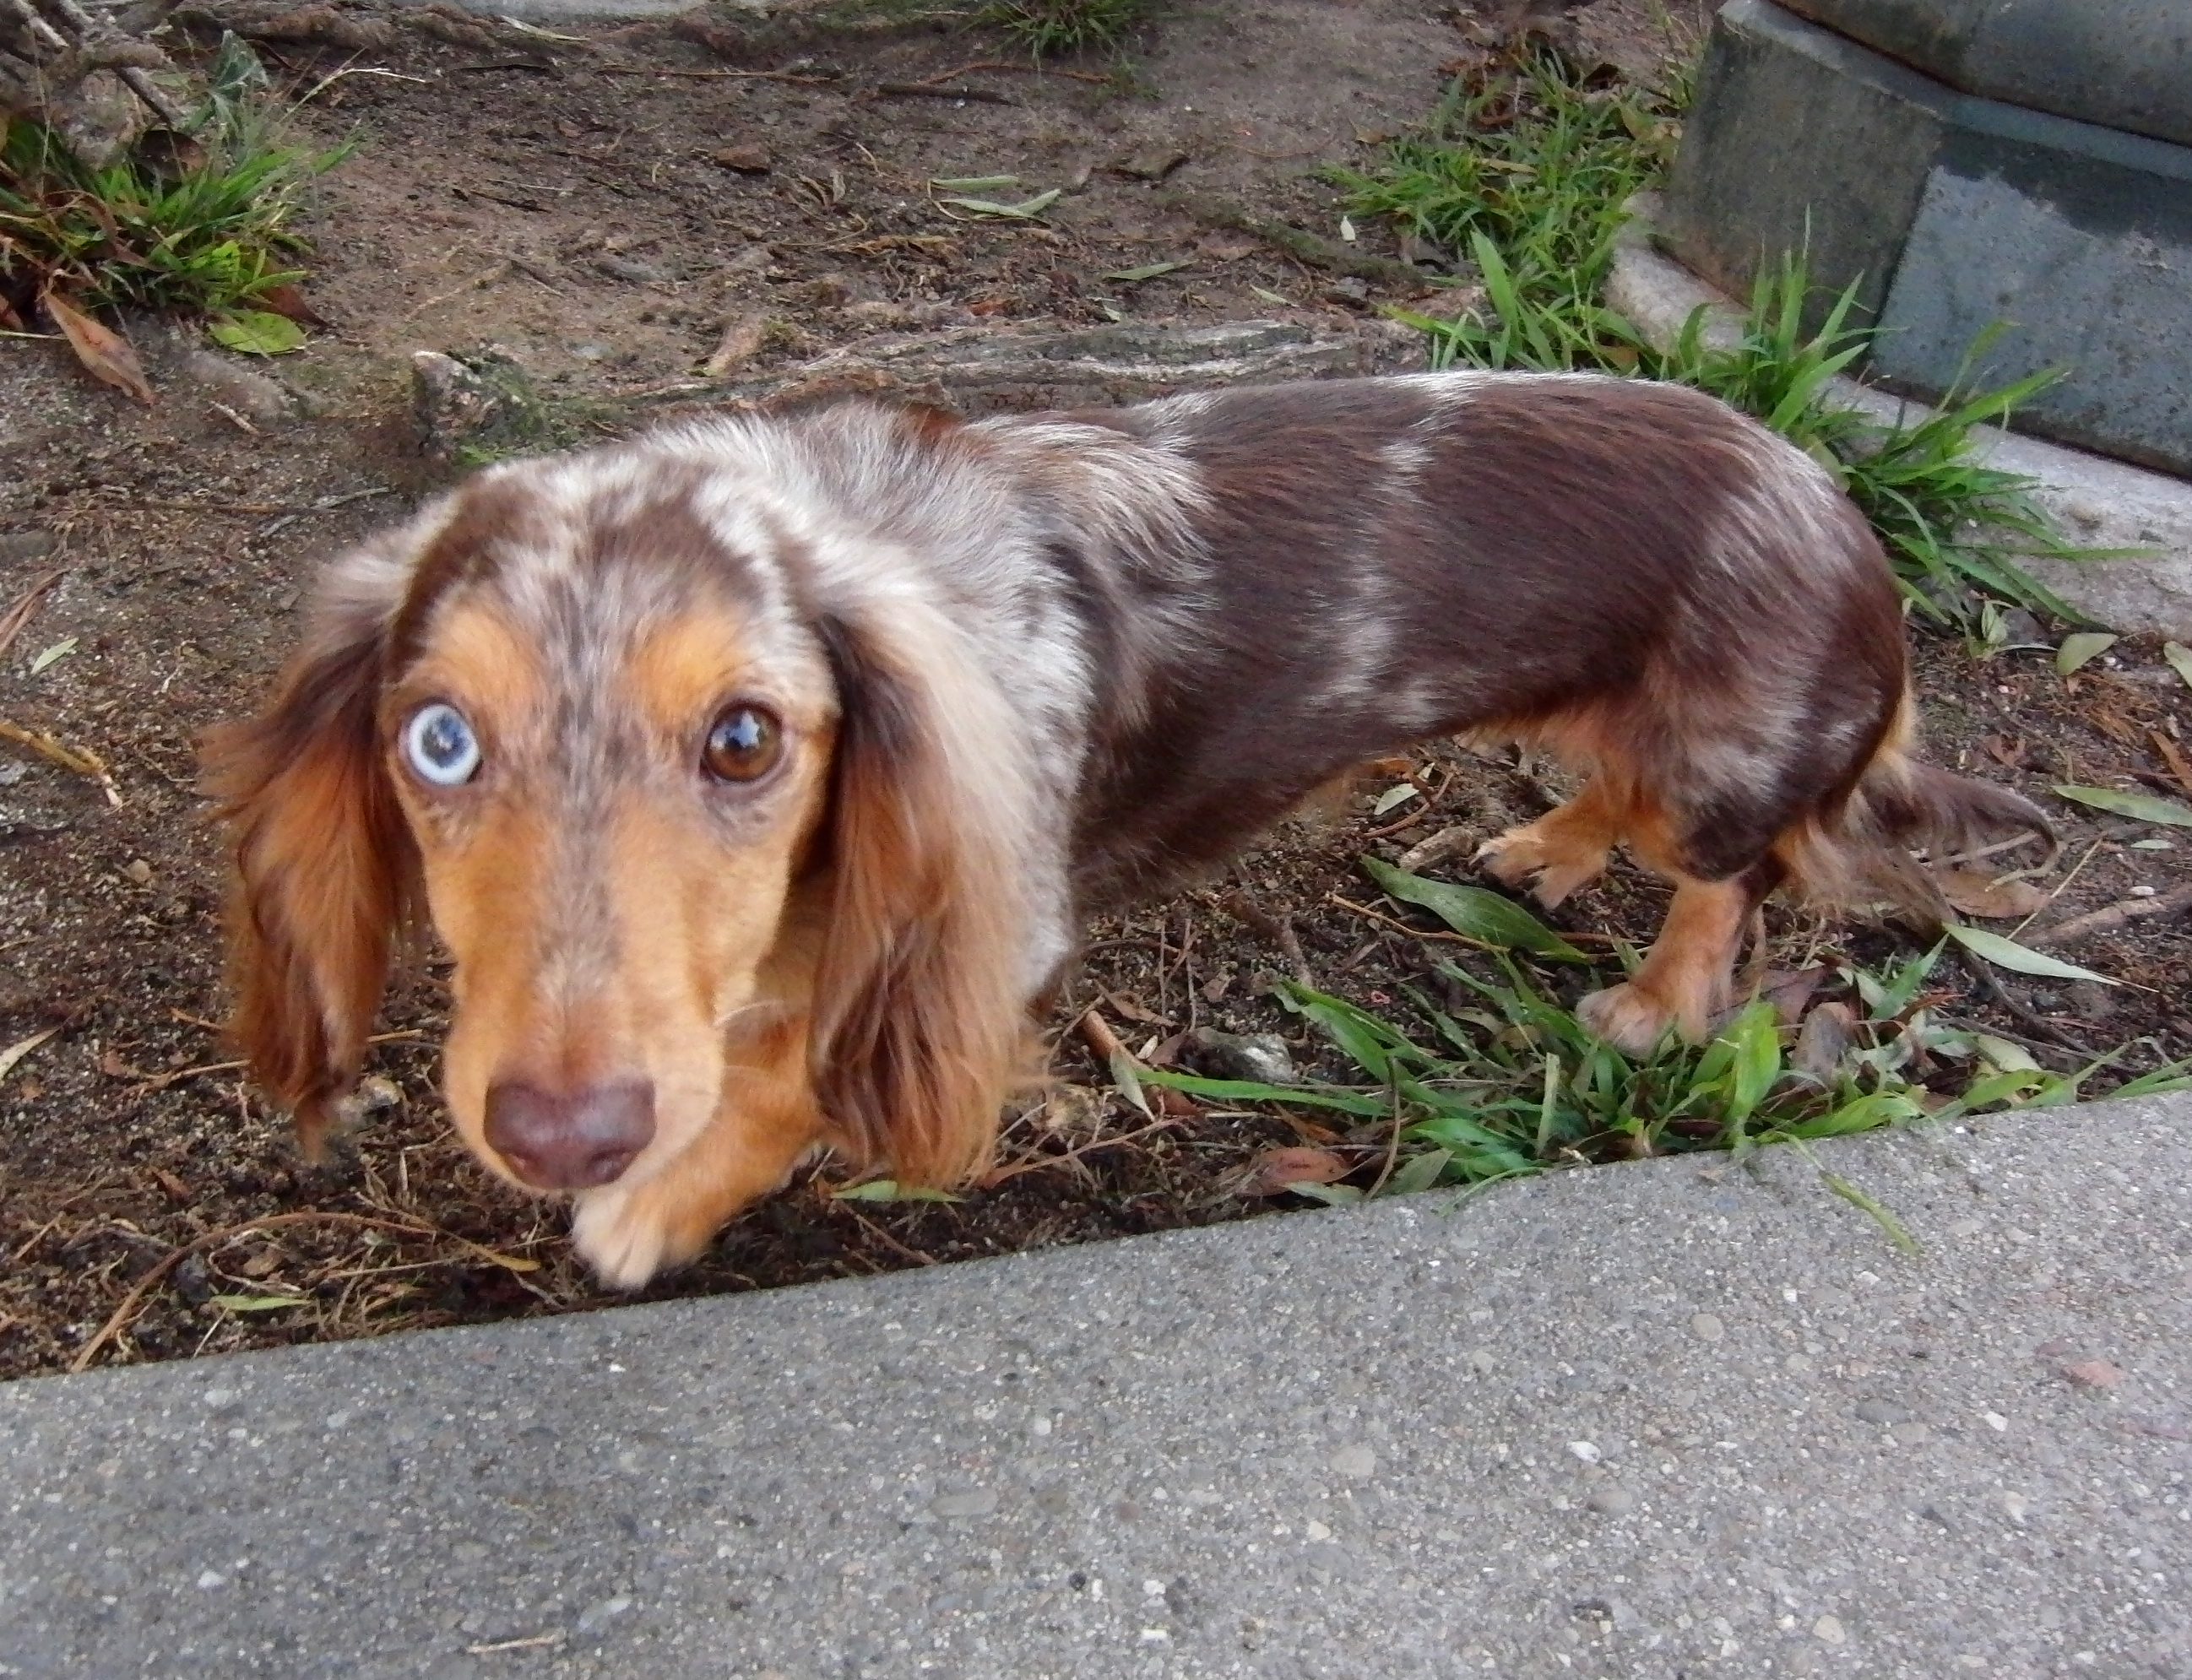 What is a blue basset hound?